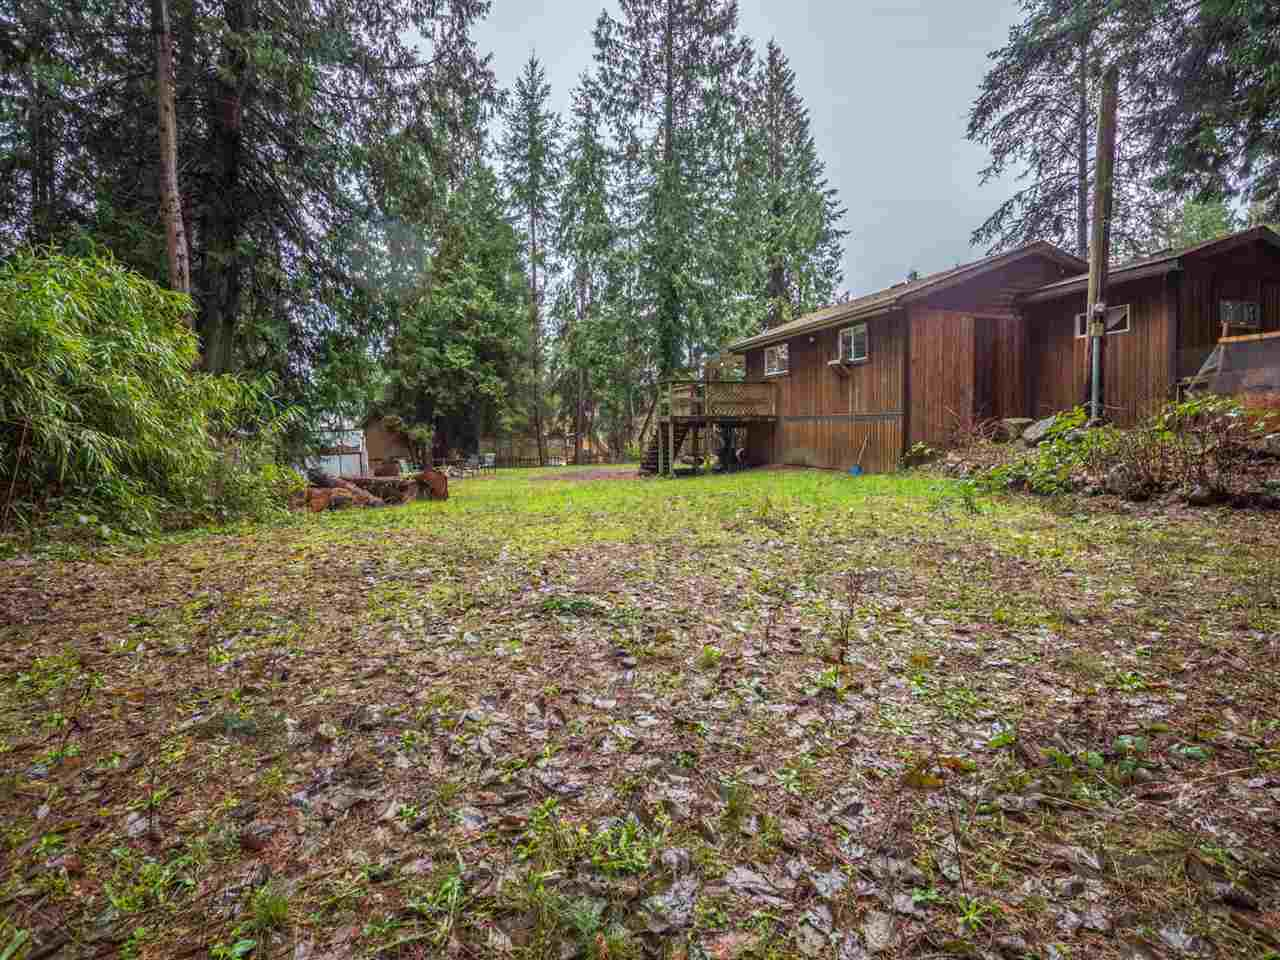 Photo 15: Photos: 5592 WAKEFIELD Road in Sechelt: Sechelt District Manufactured Home for sale (Sunshine Coast)  : MLS® # R2230720